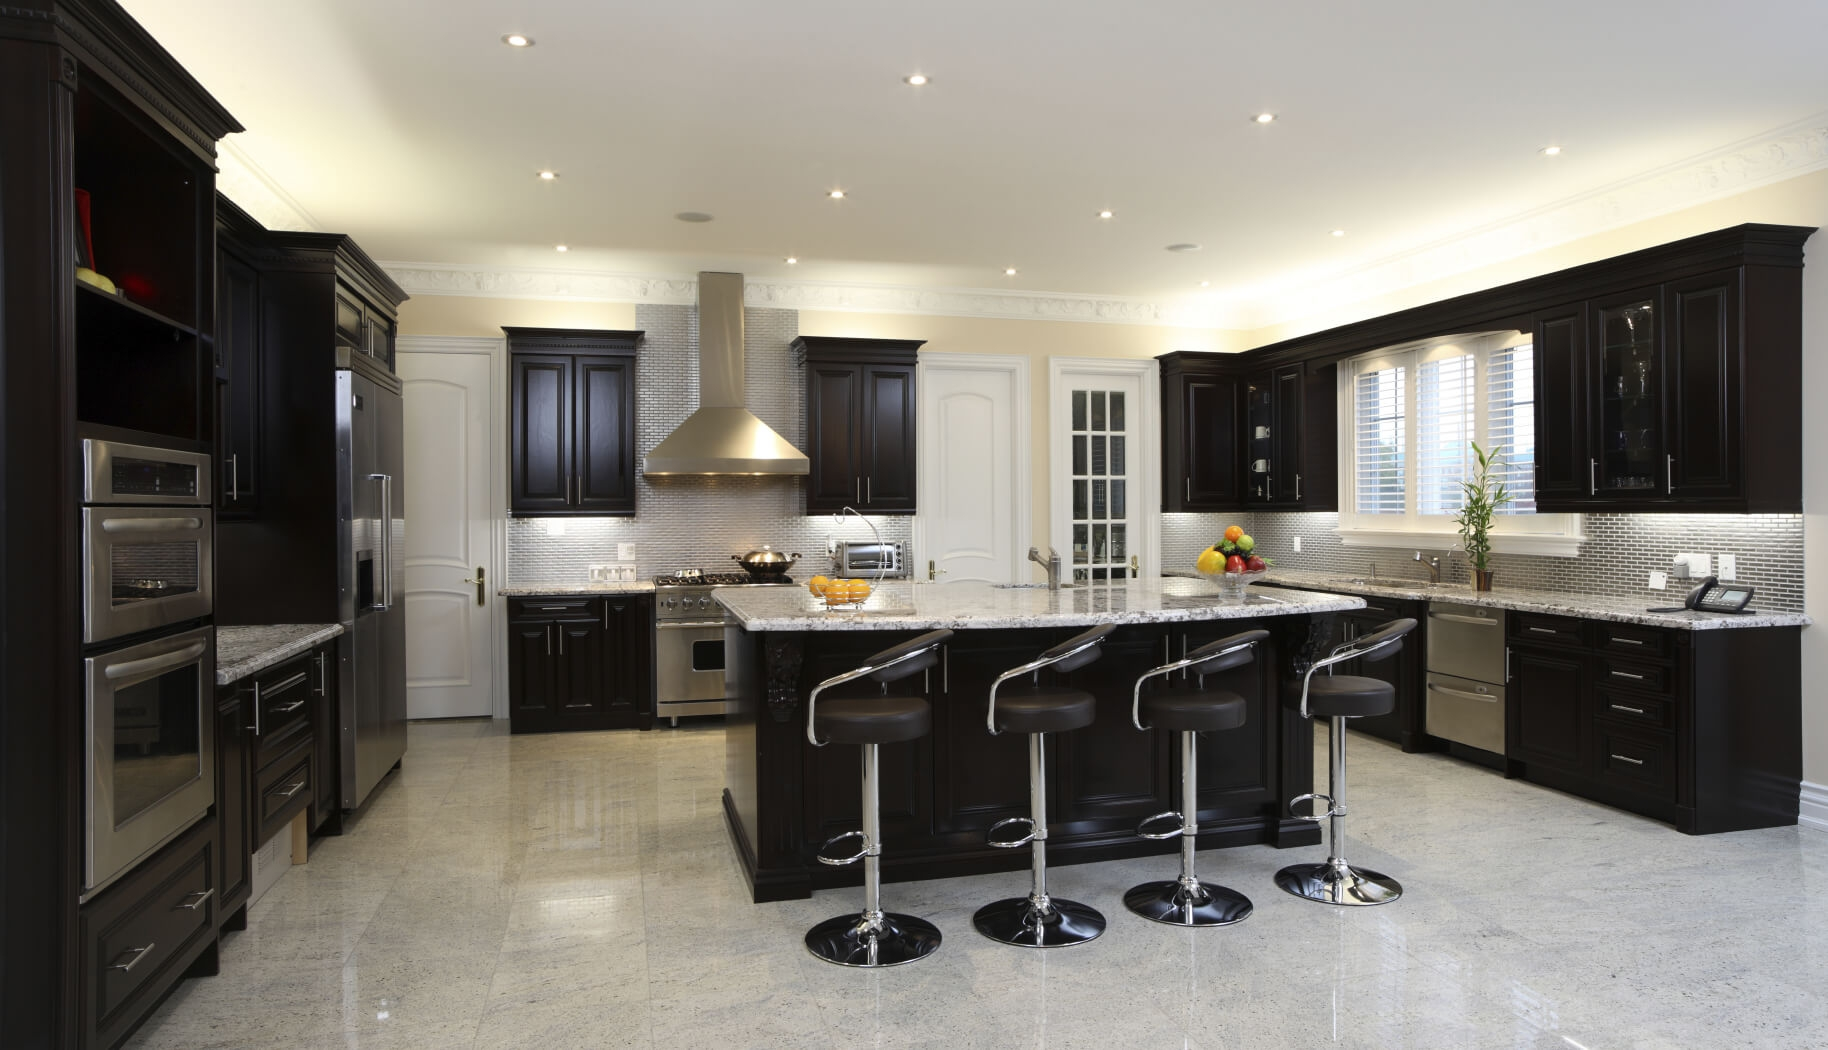 Permalink to Black Kitchen Cabinets With Black Appliances